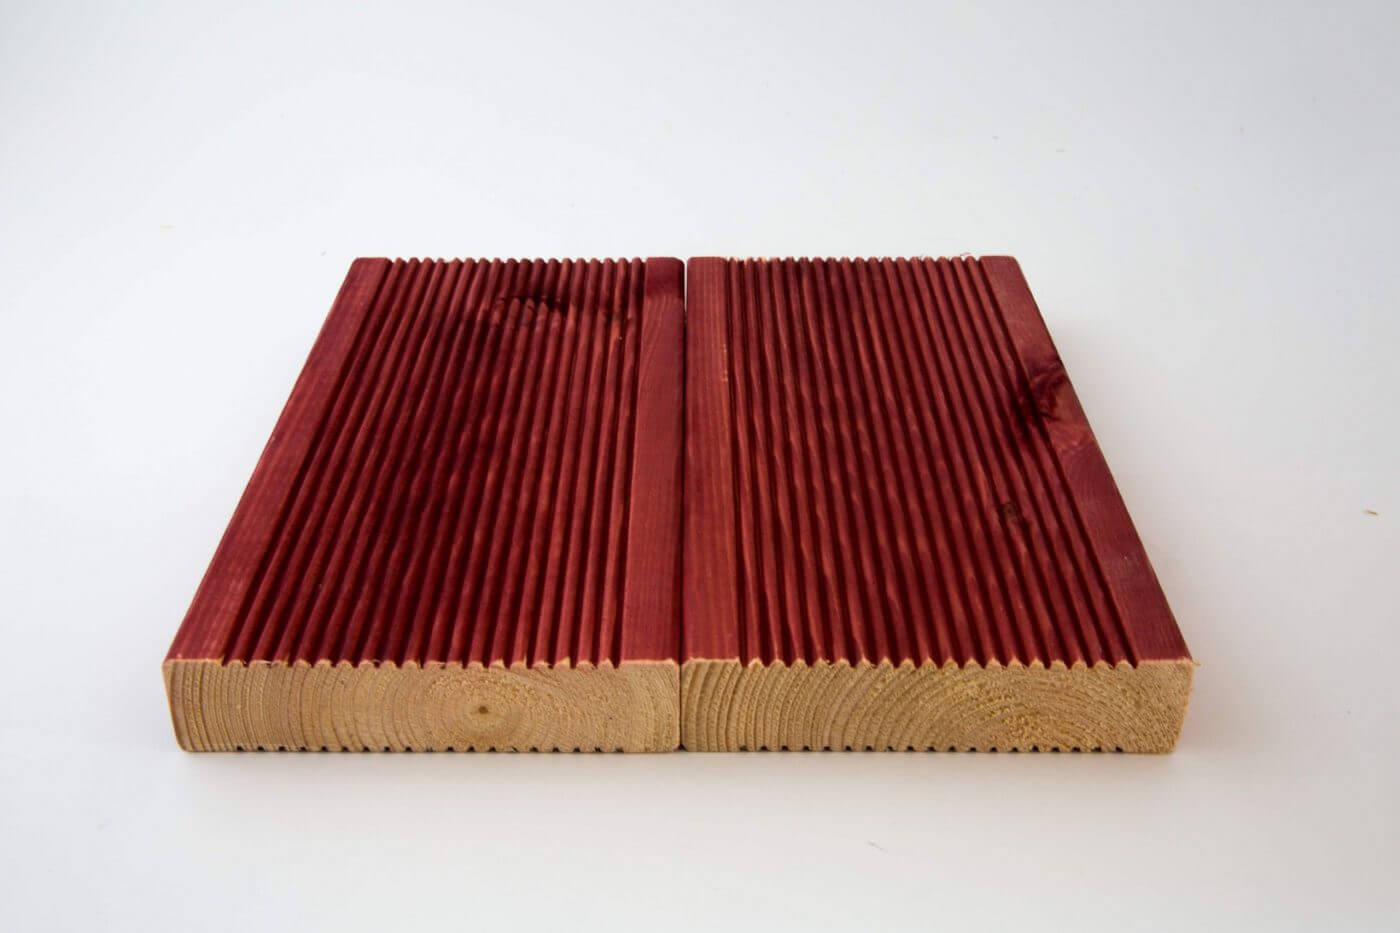 Timber Deck boards from Timber Focus pet and child friendly stained and oiled